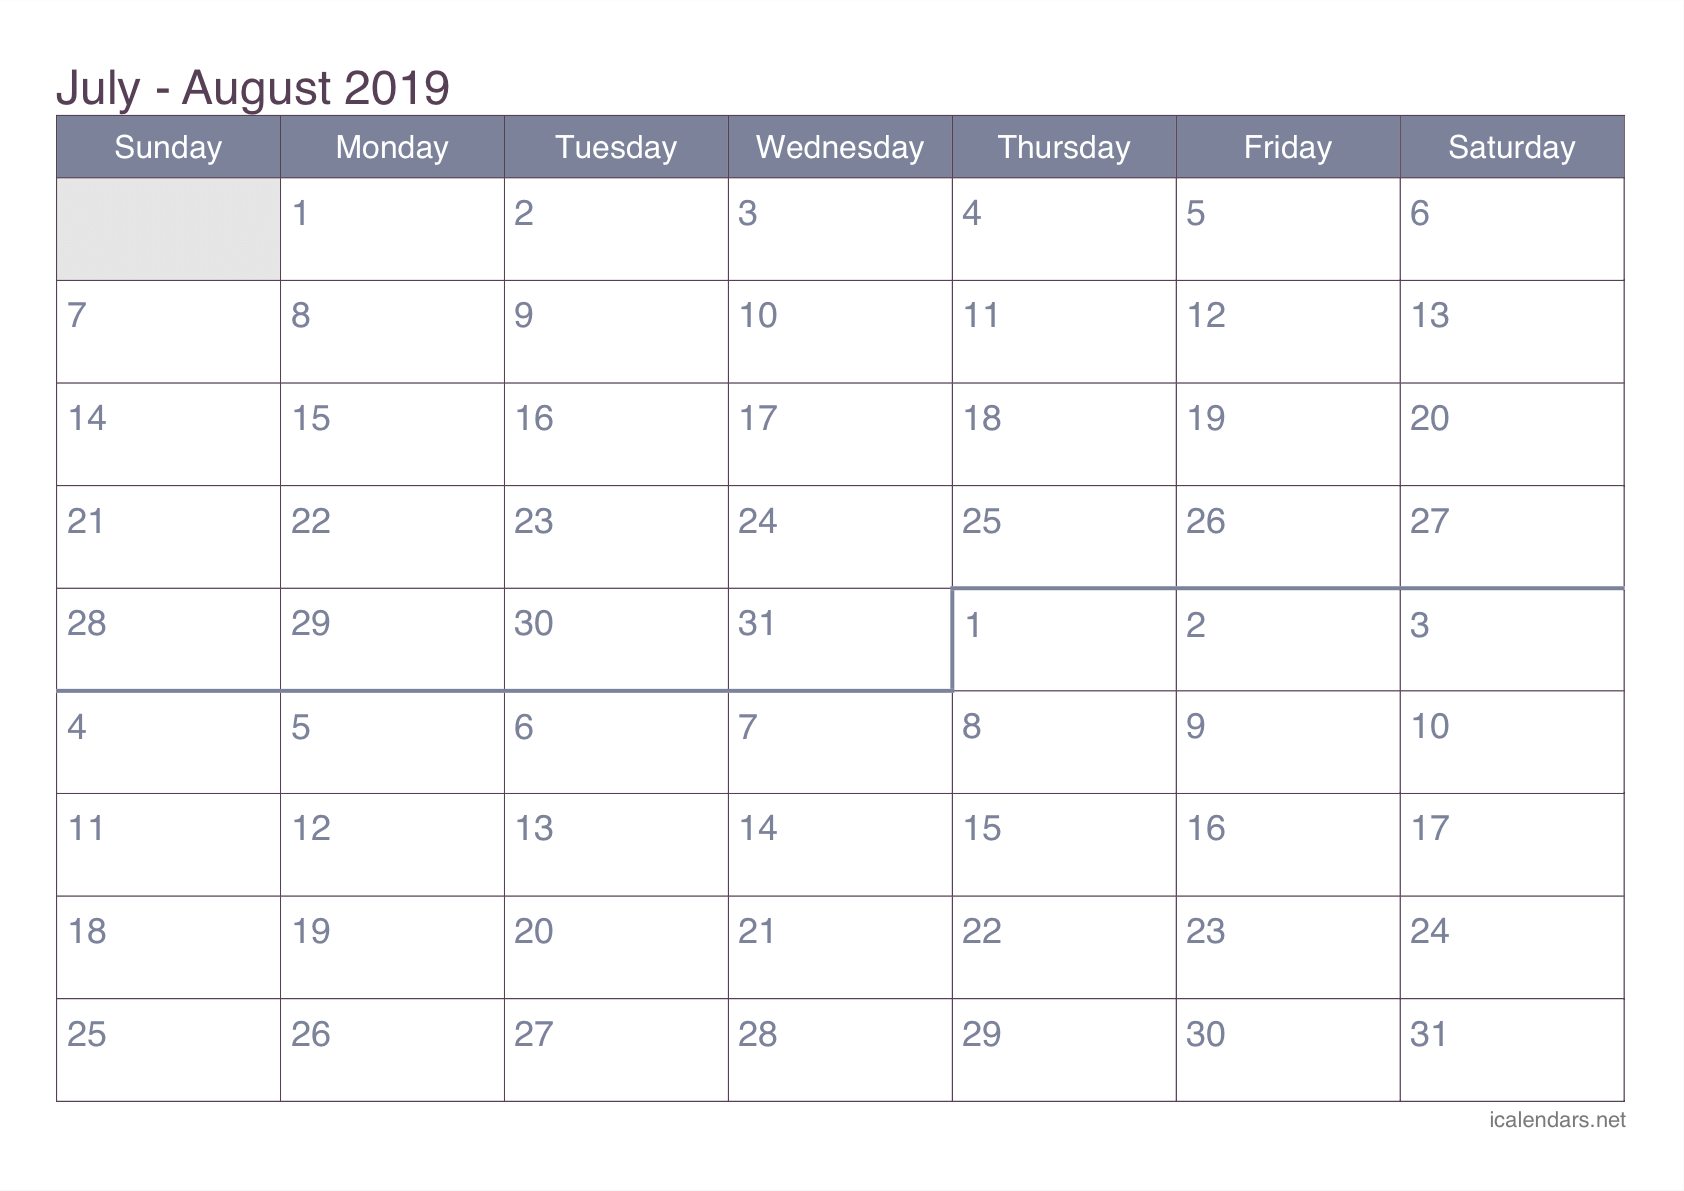 July And August 2019 Printable Calendar Icalendars Net